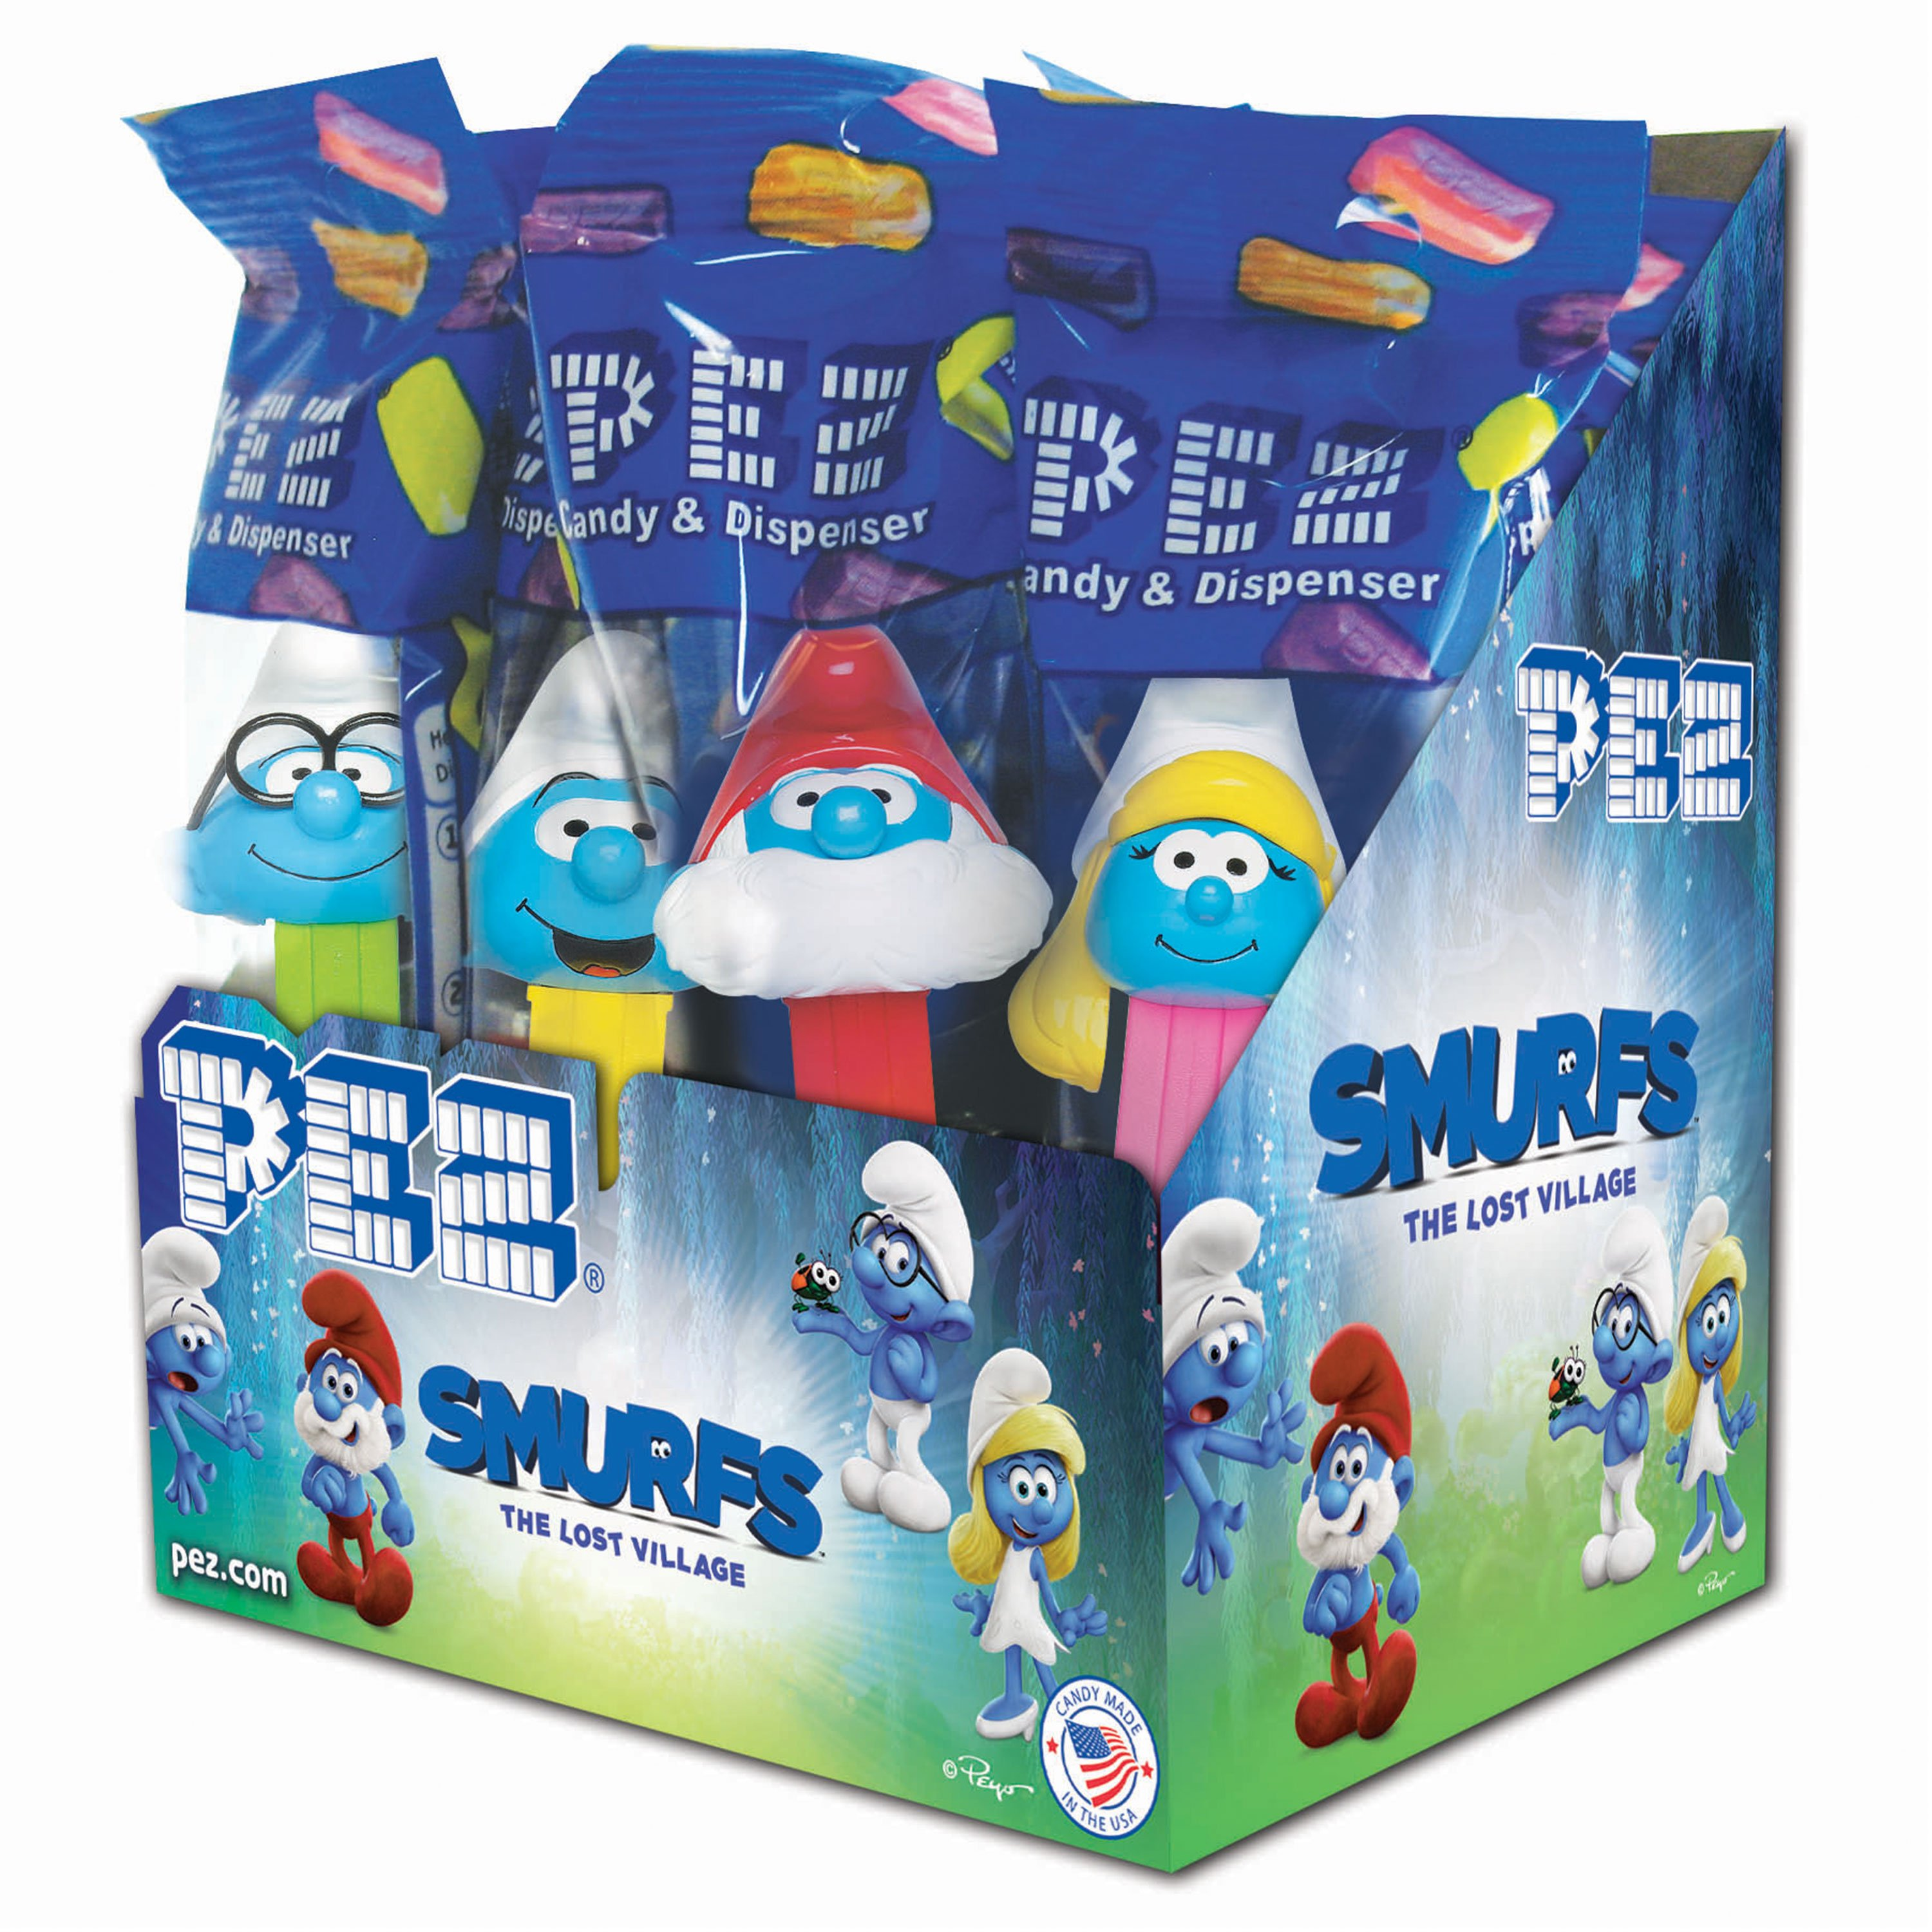 PEZ Candy Smurfs Assortment, candy dispenser plus 2 rolls of assorted fruit candy, box of 12